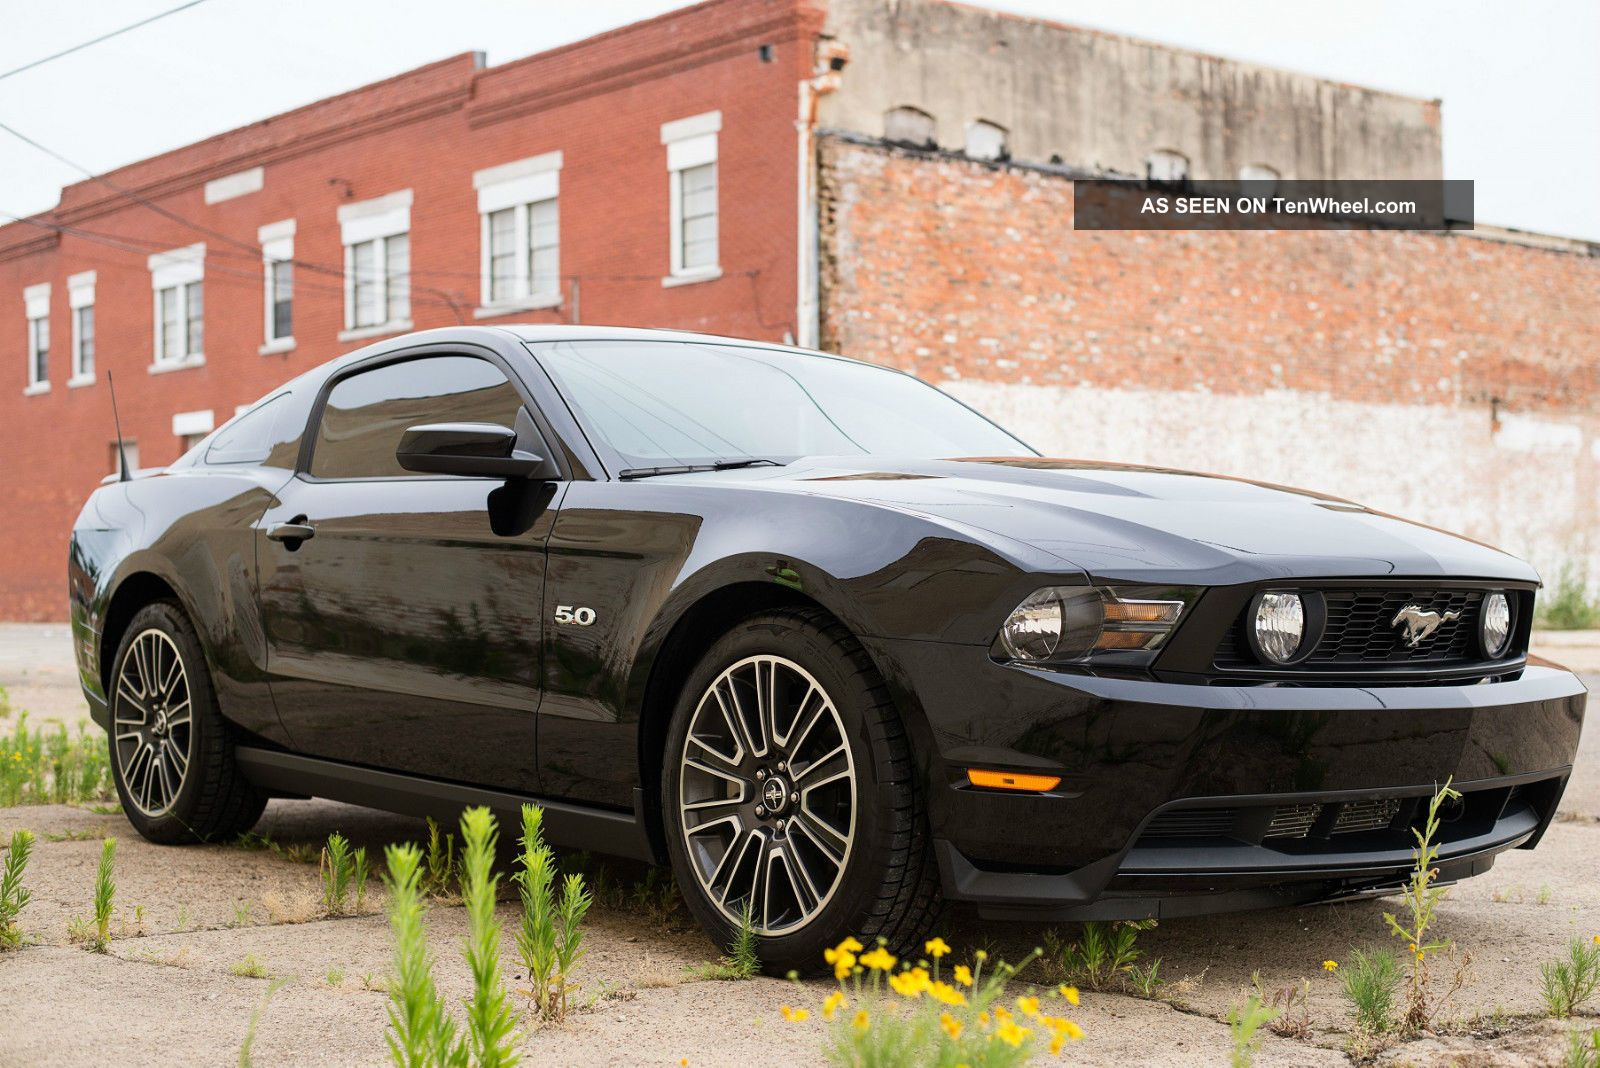 2012 ford mustang gt 5 0 premium coupe 6 speed manual black. Black Bedroom Furniture Sets. Home Design Ideas